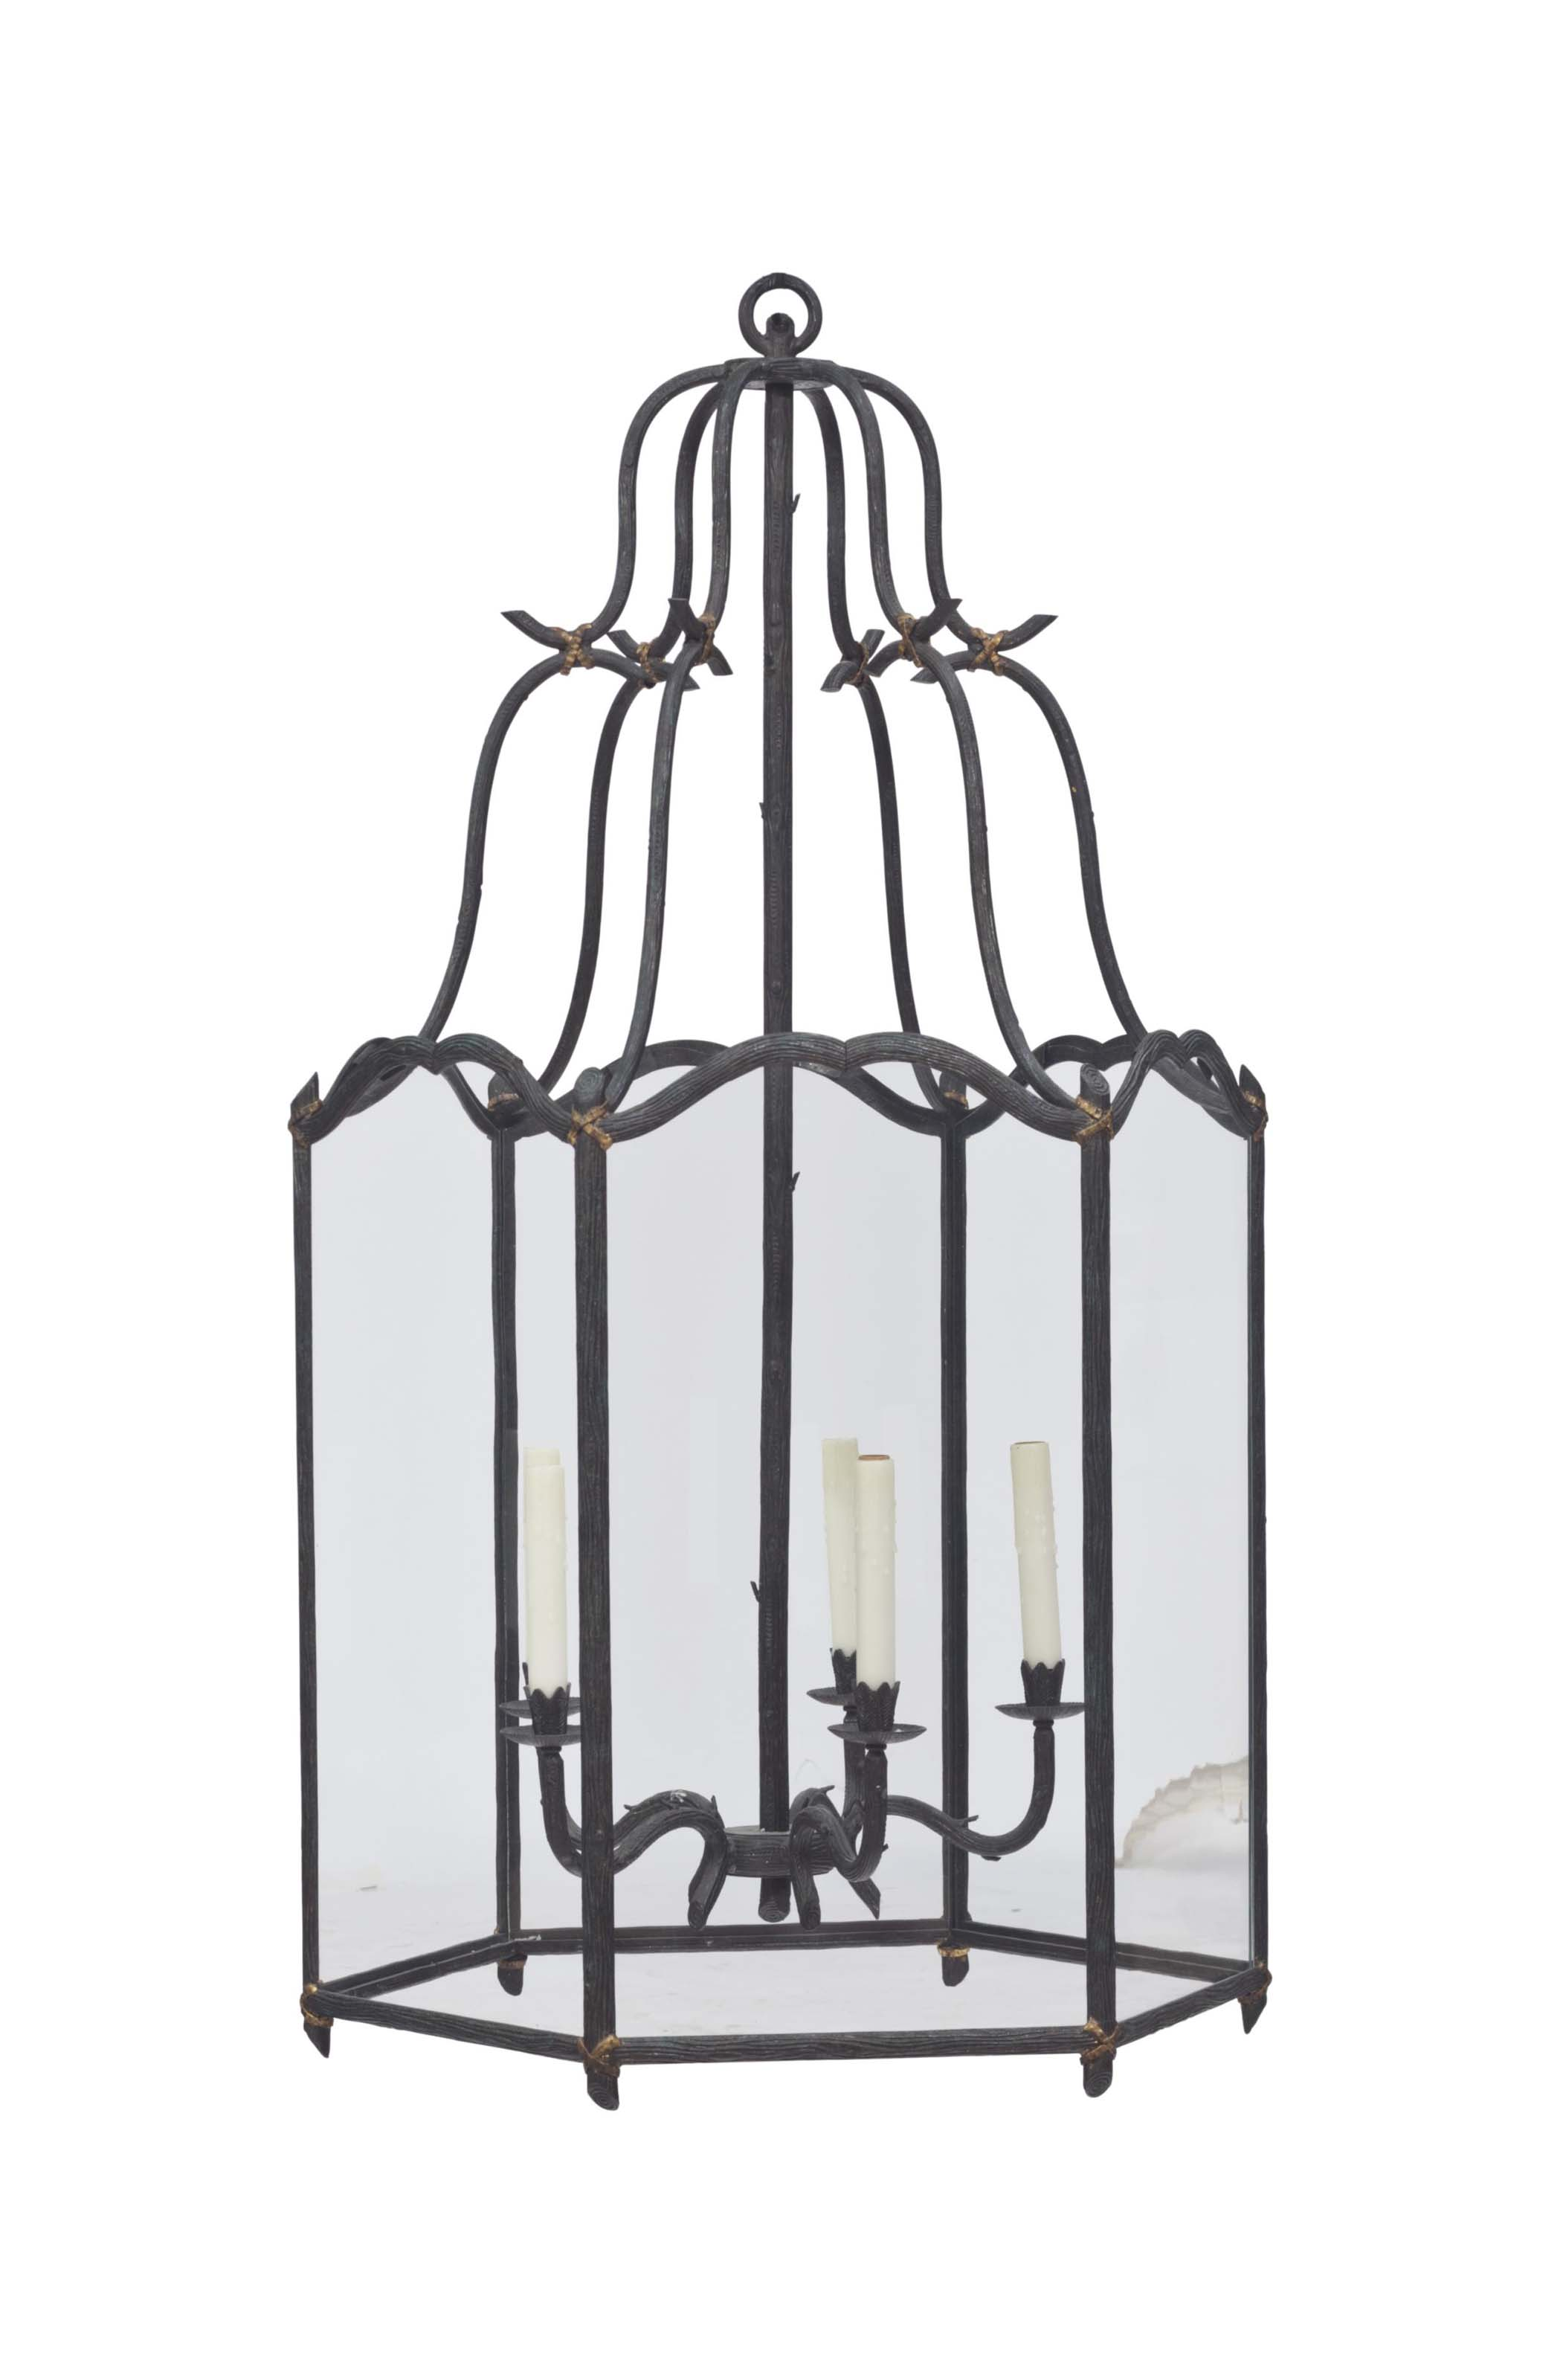 A WROUGHT IRON AND PARCEL GILT FIVE-LIGHT LANTERN